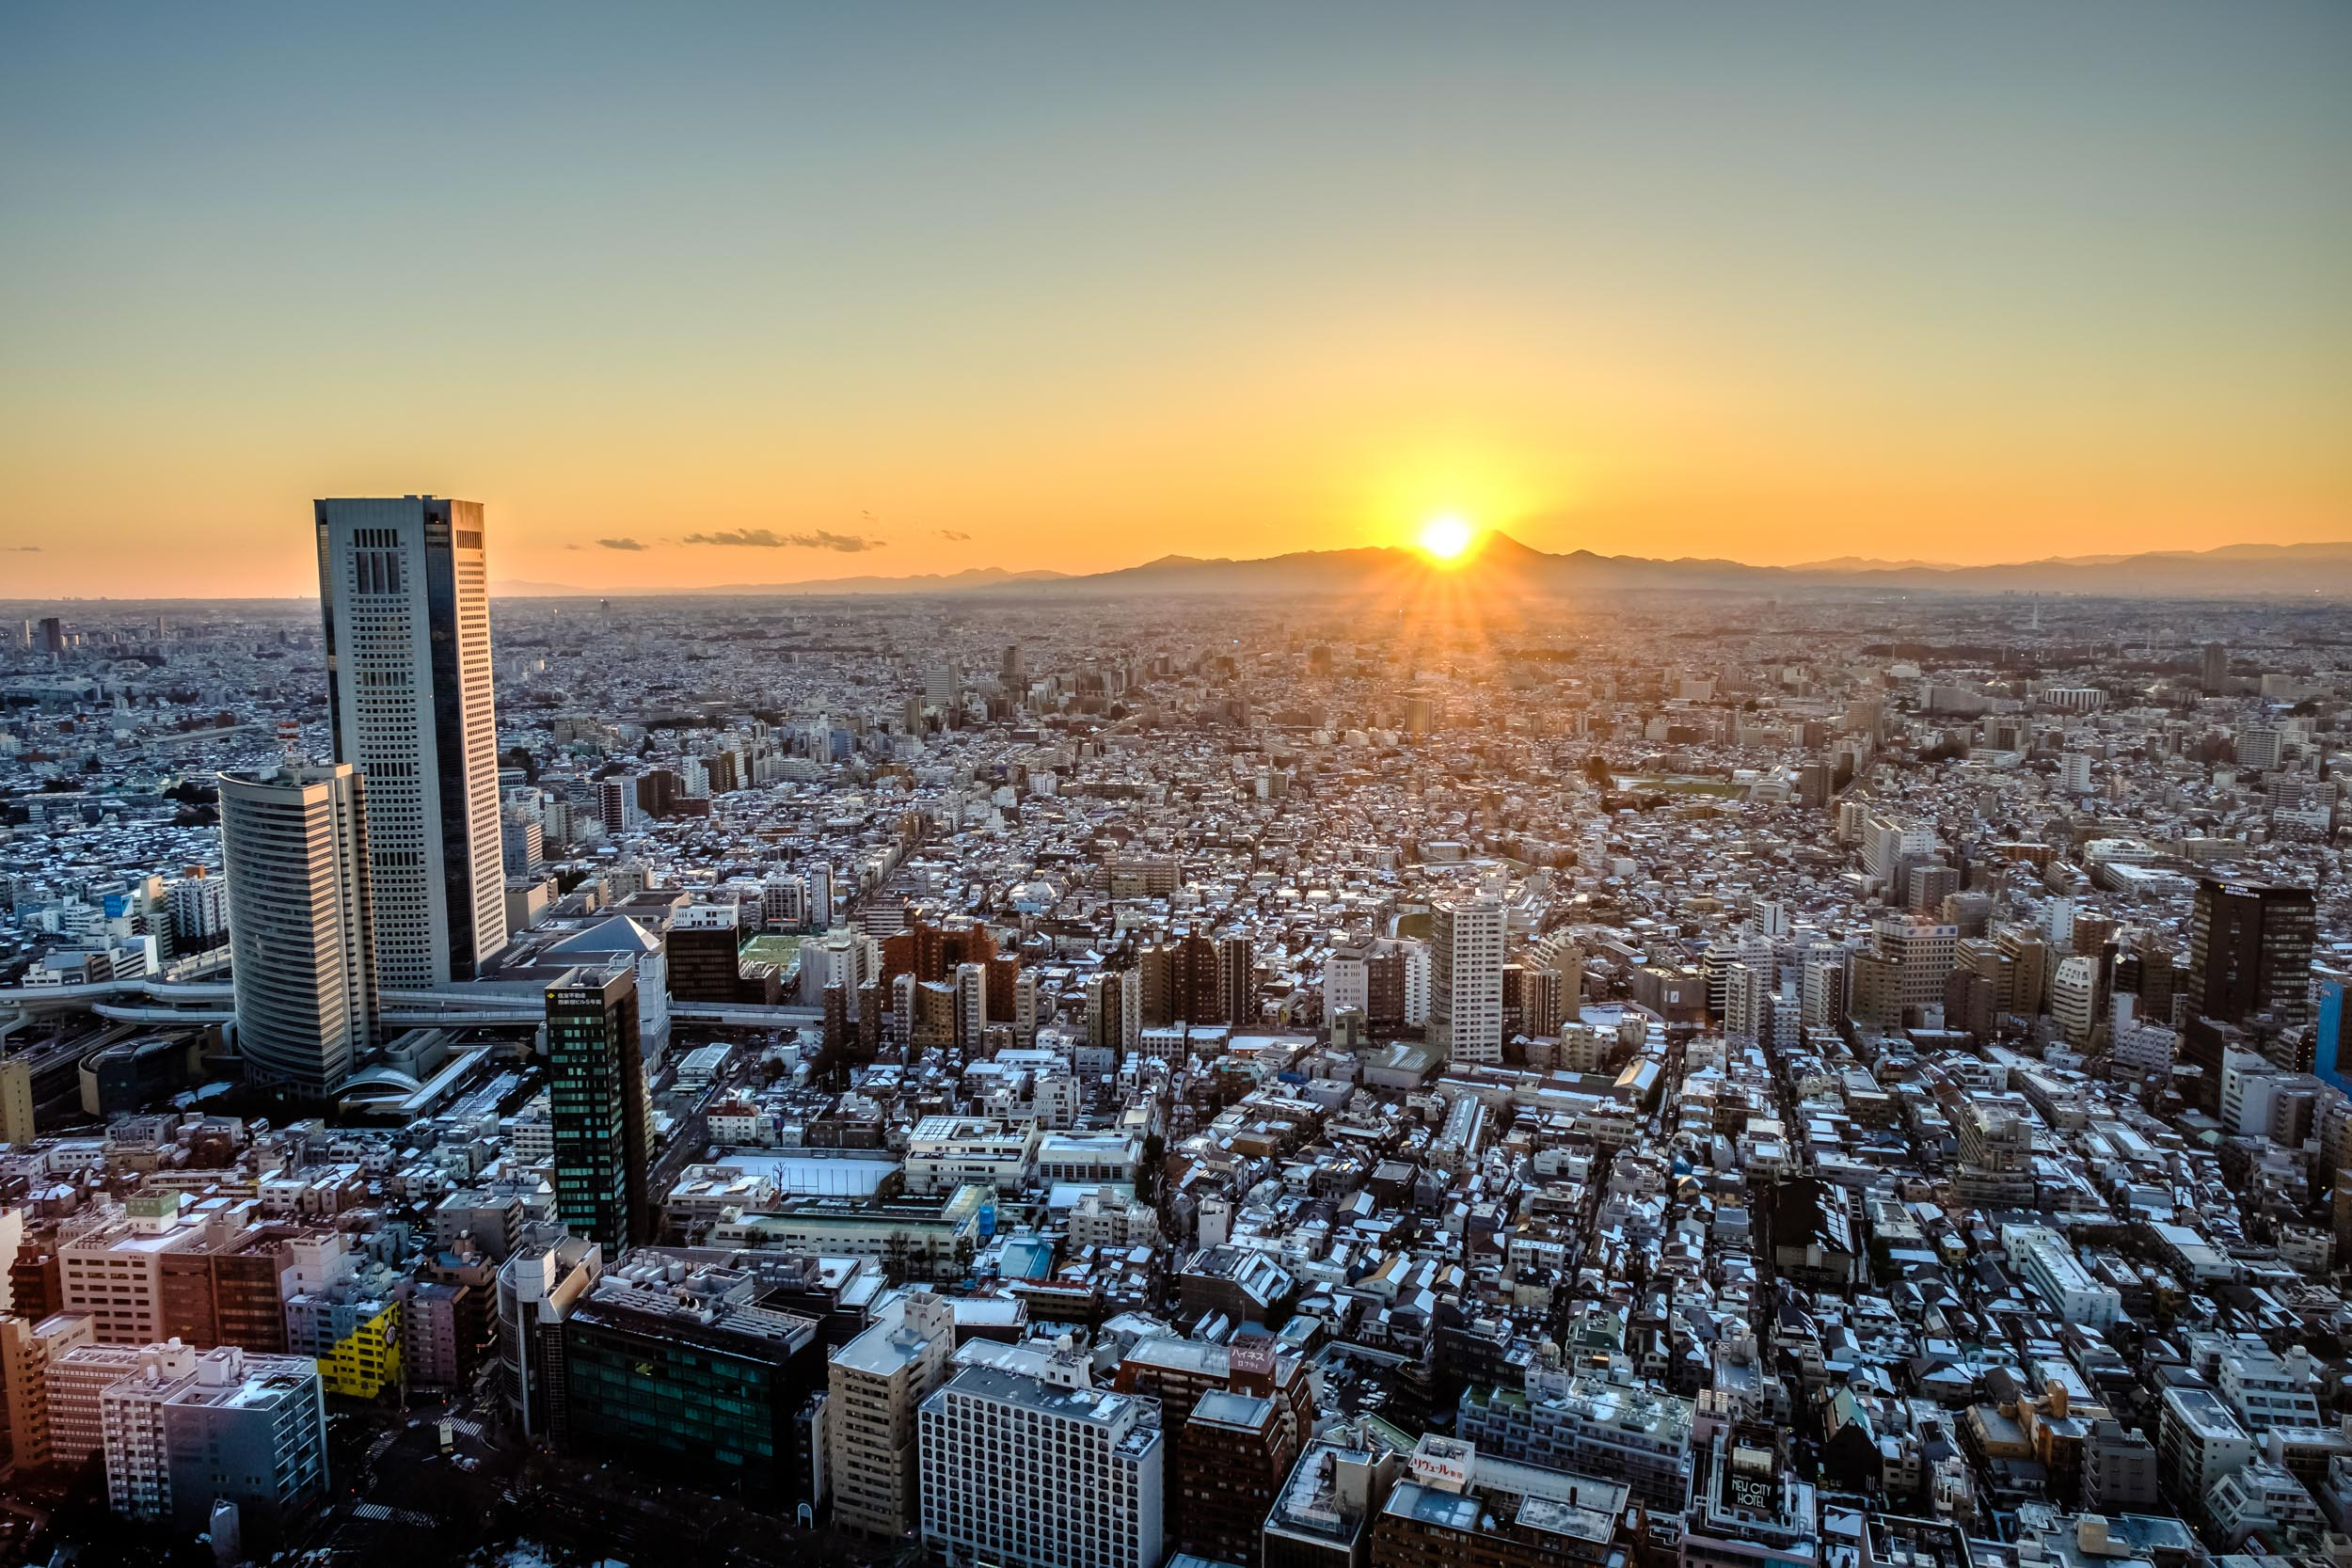 Mt. Fuji seen from the Tokyo Metropolitan Government Building at sunset